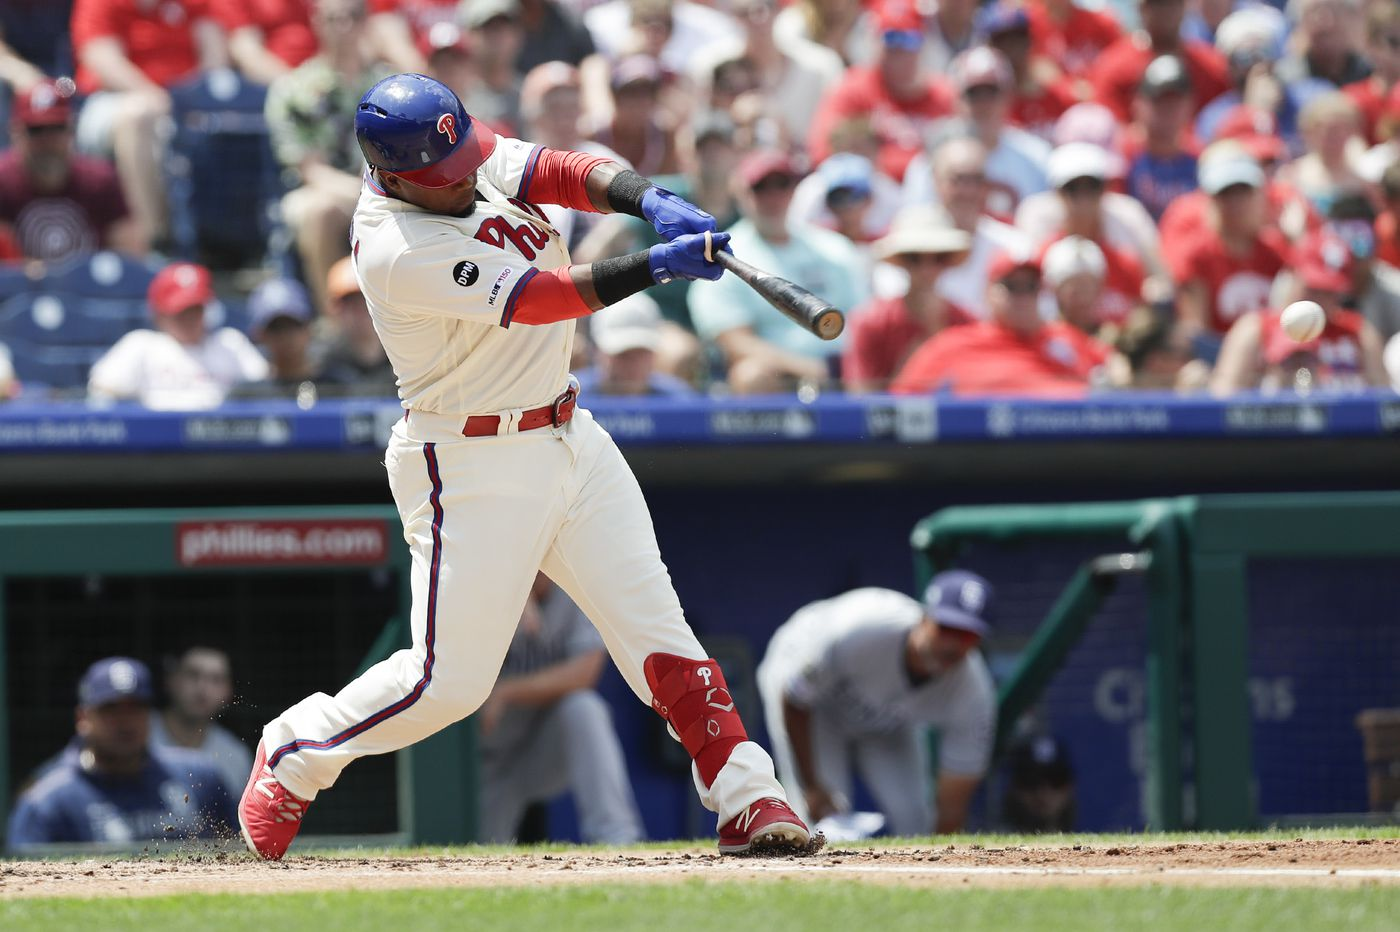 Phillies look sluggish in loss to Padres as Bryce Harper leaves dehydrated